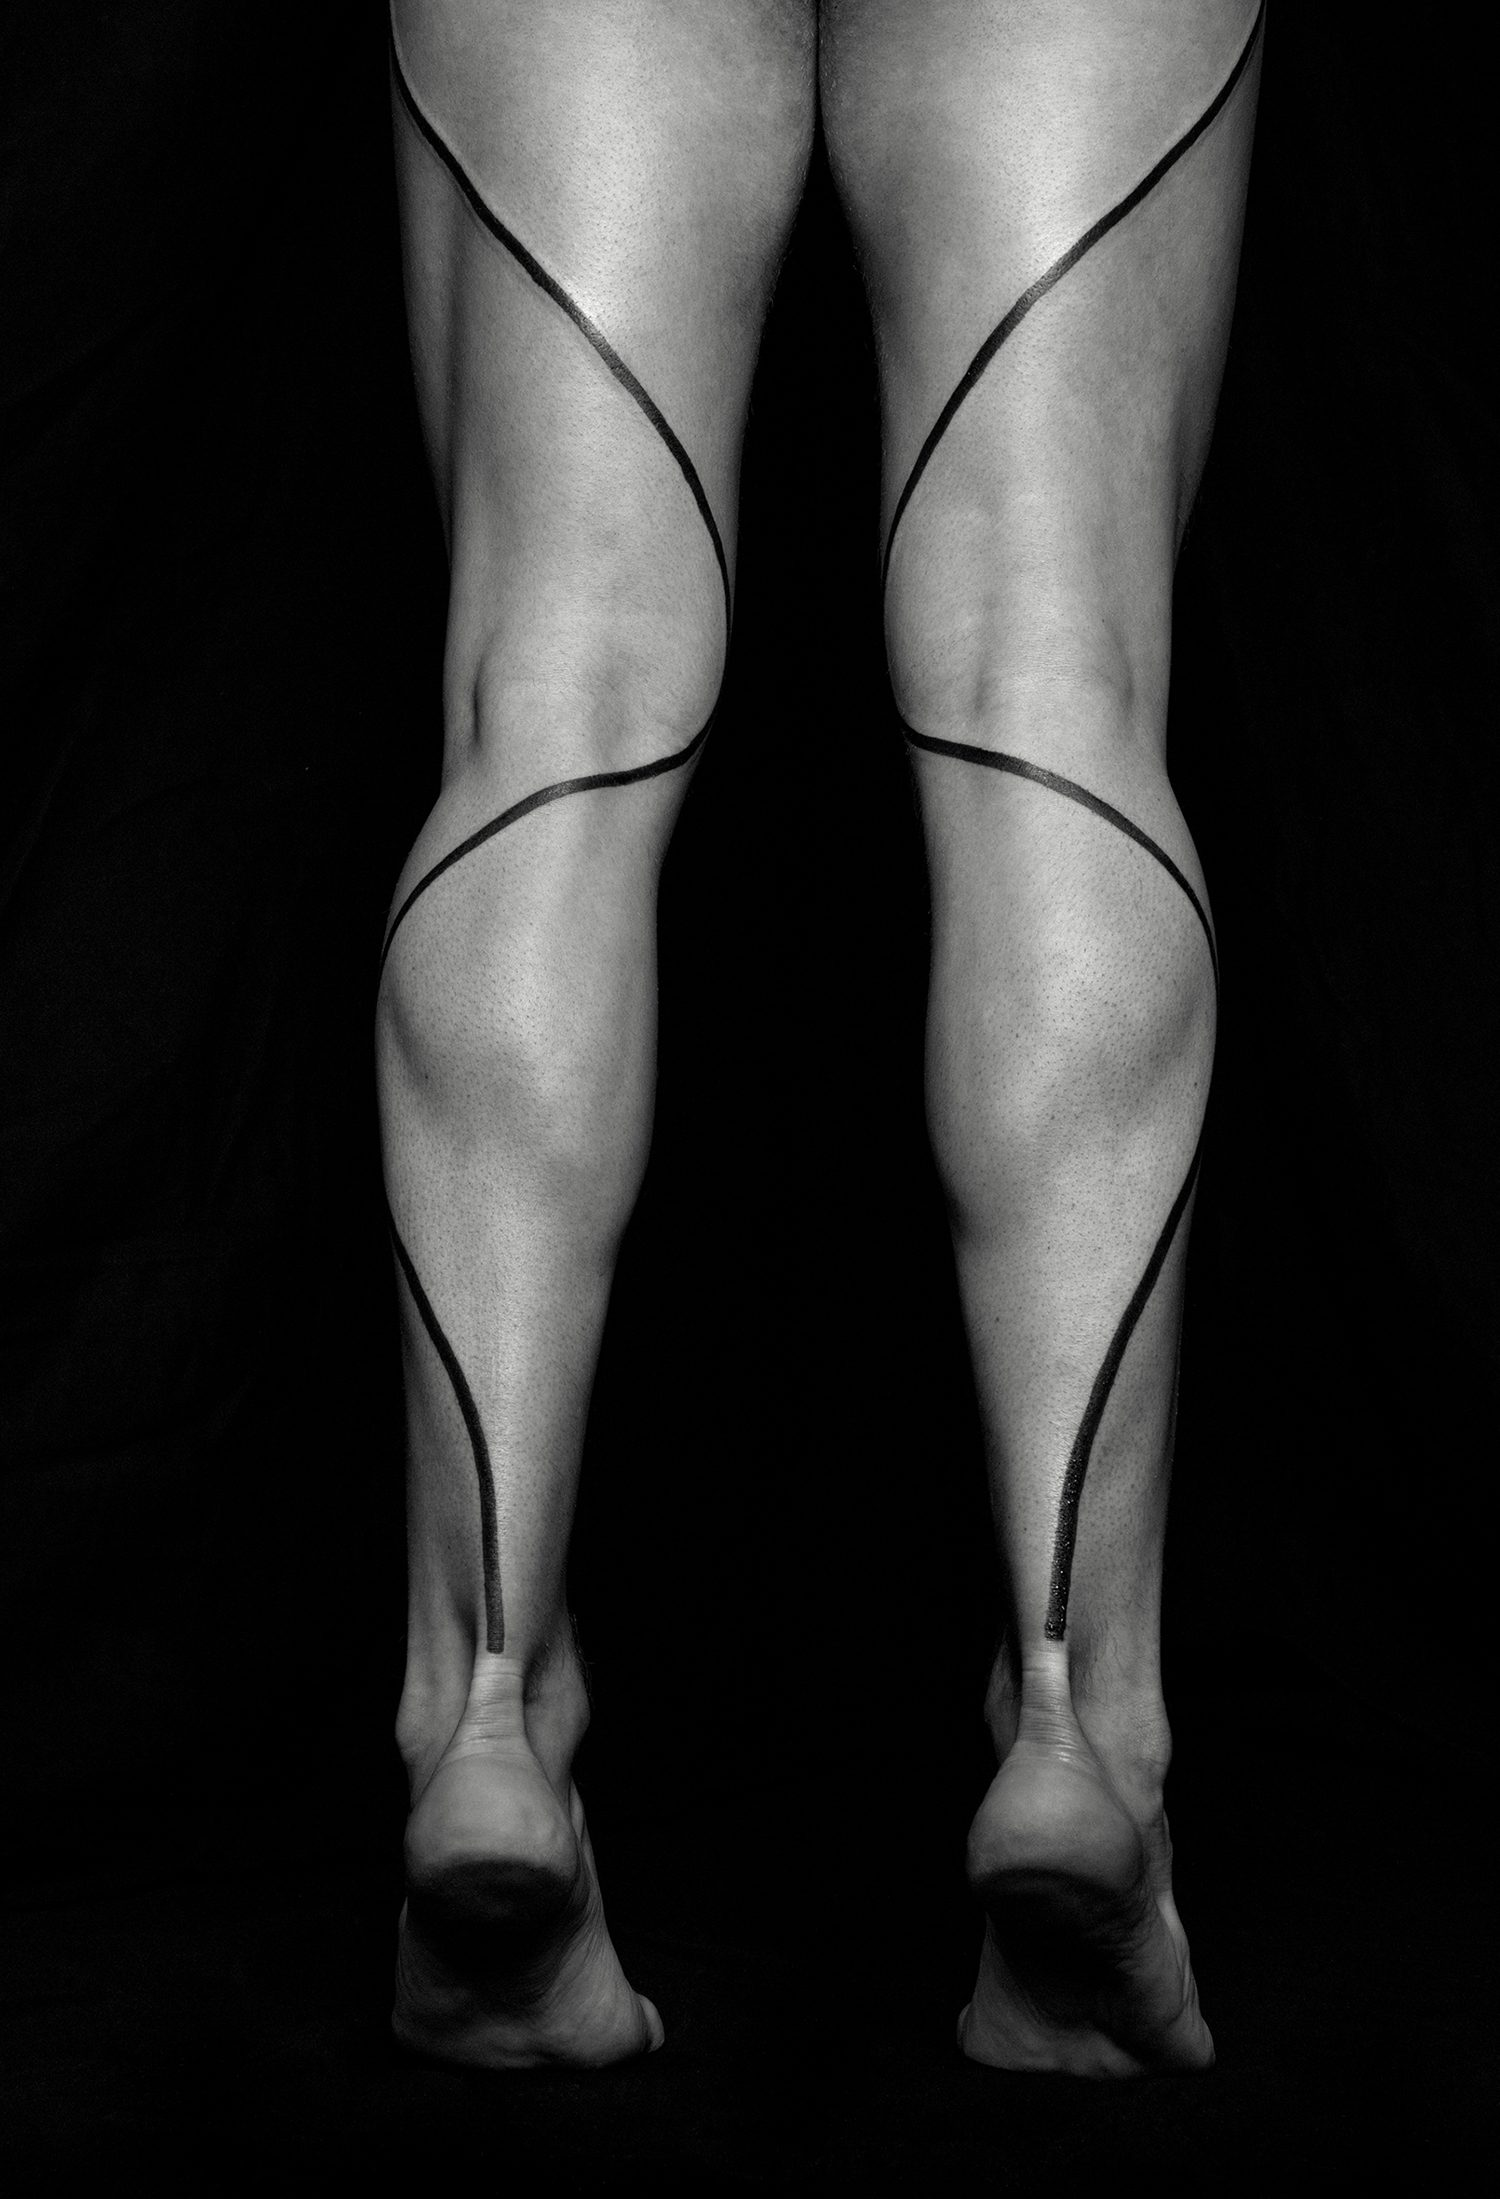 line tattoo on legs by chaim machlev. photo © erik weiss